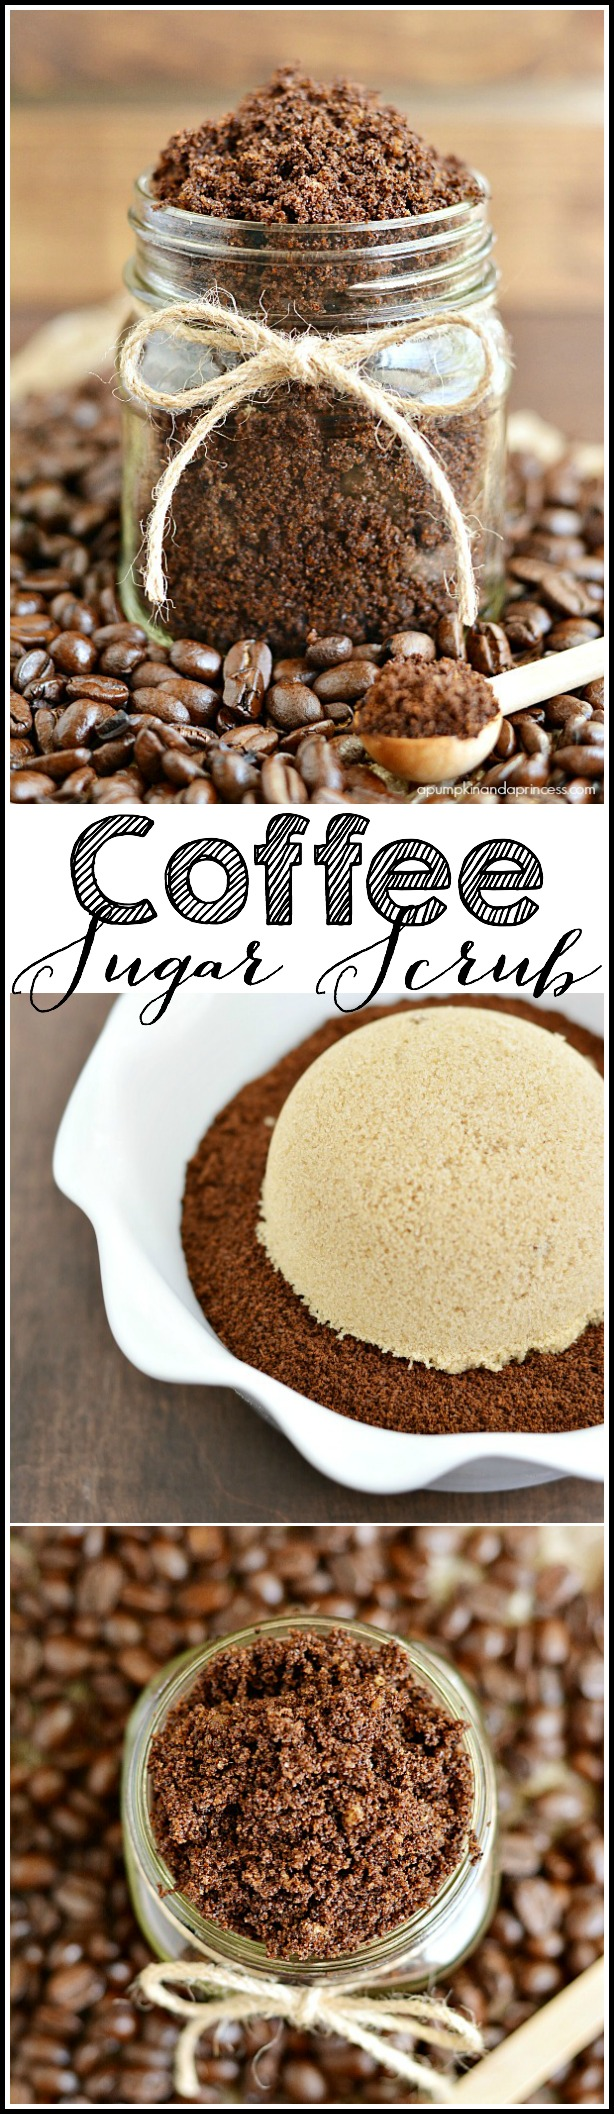 DIY-Coffee-Sugar-Scrub